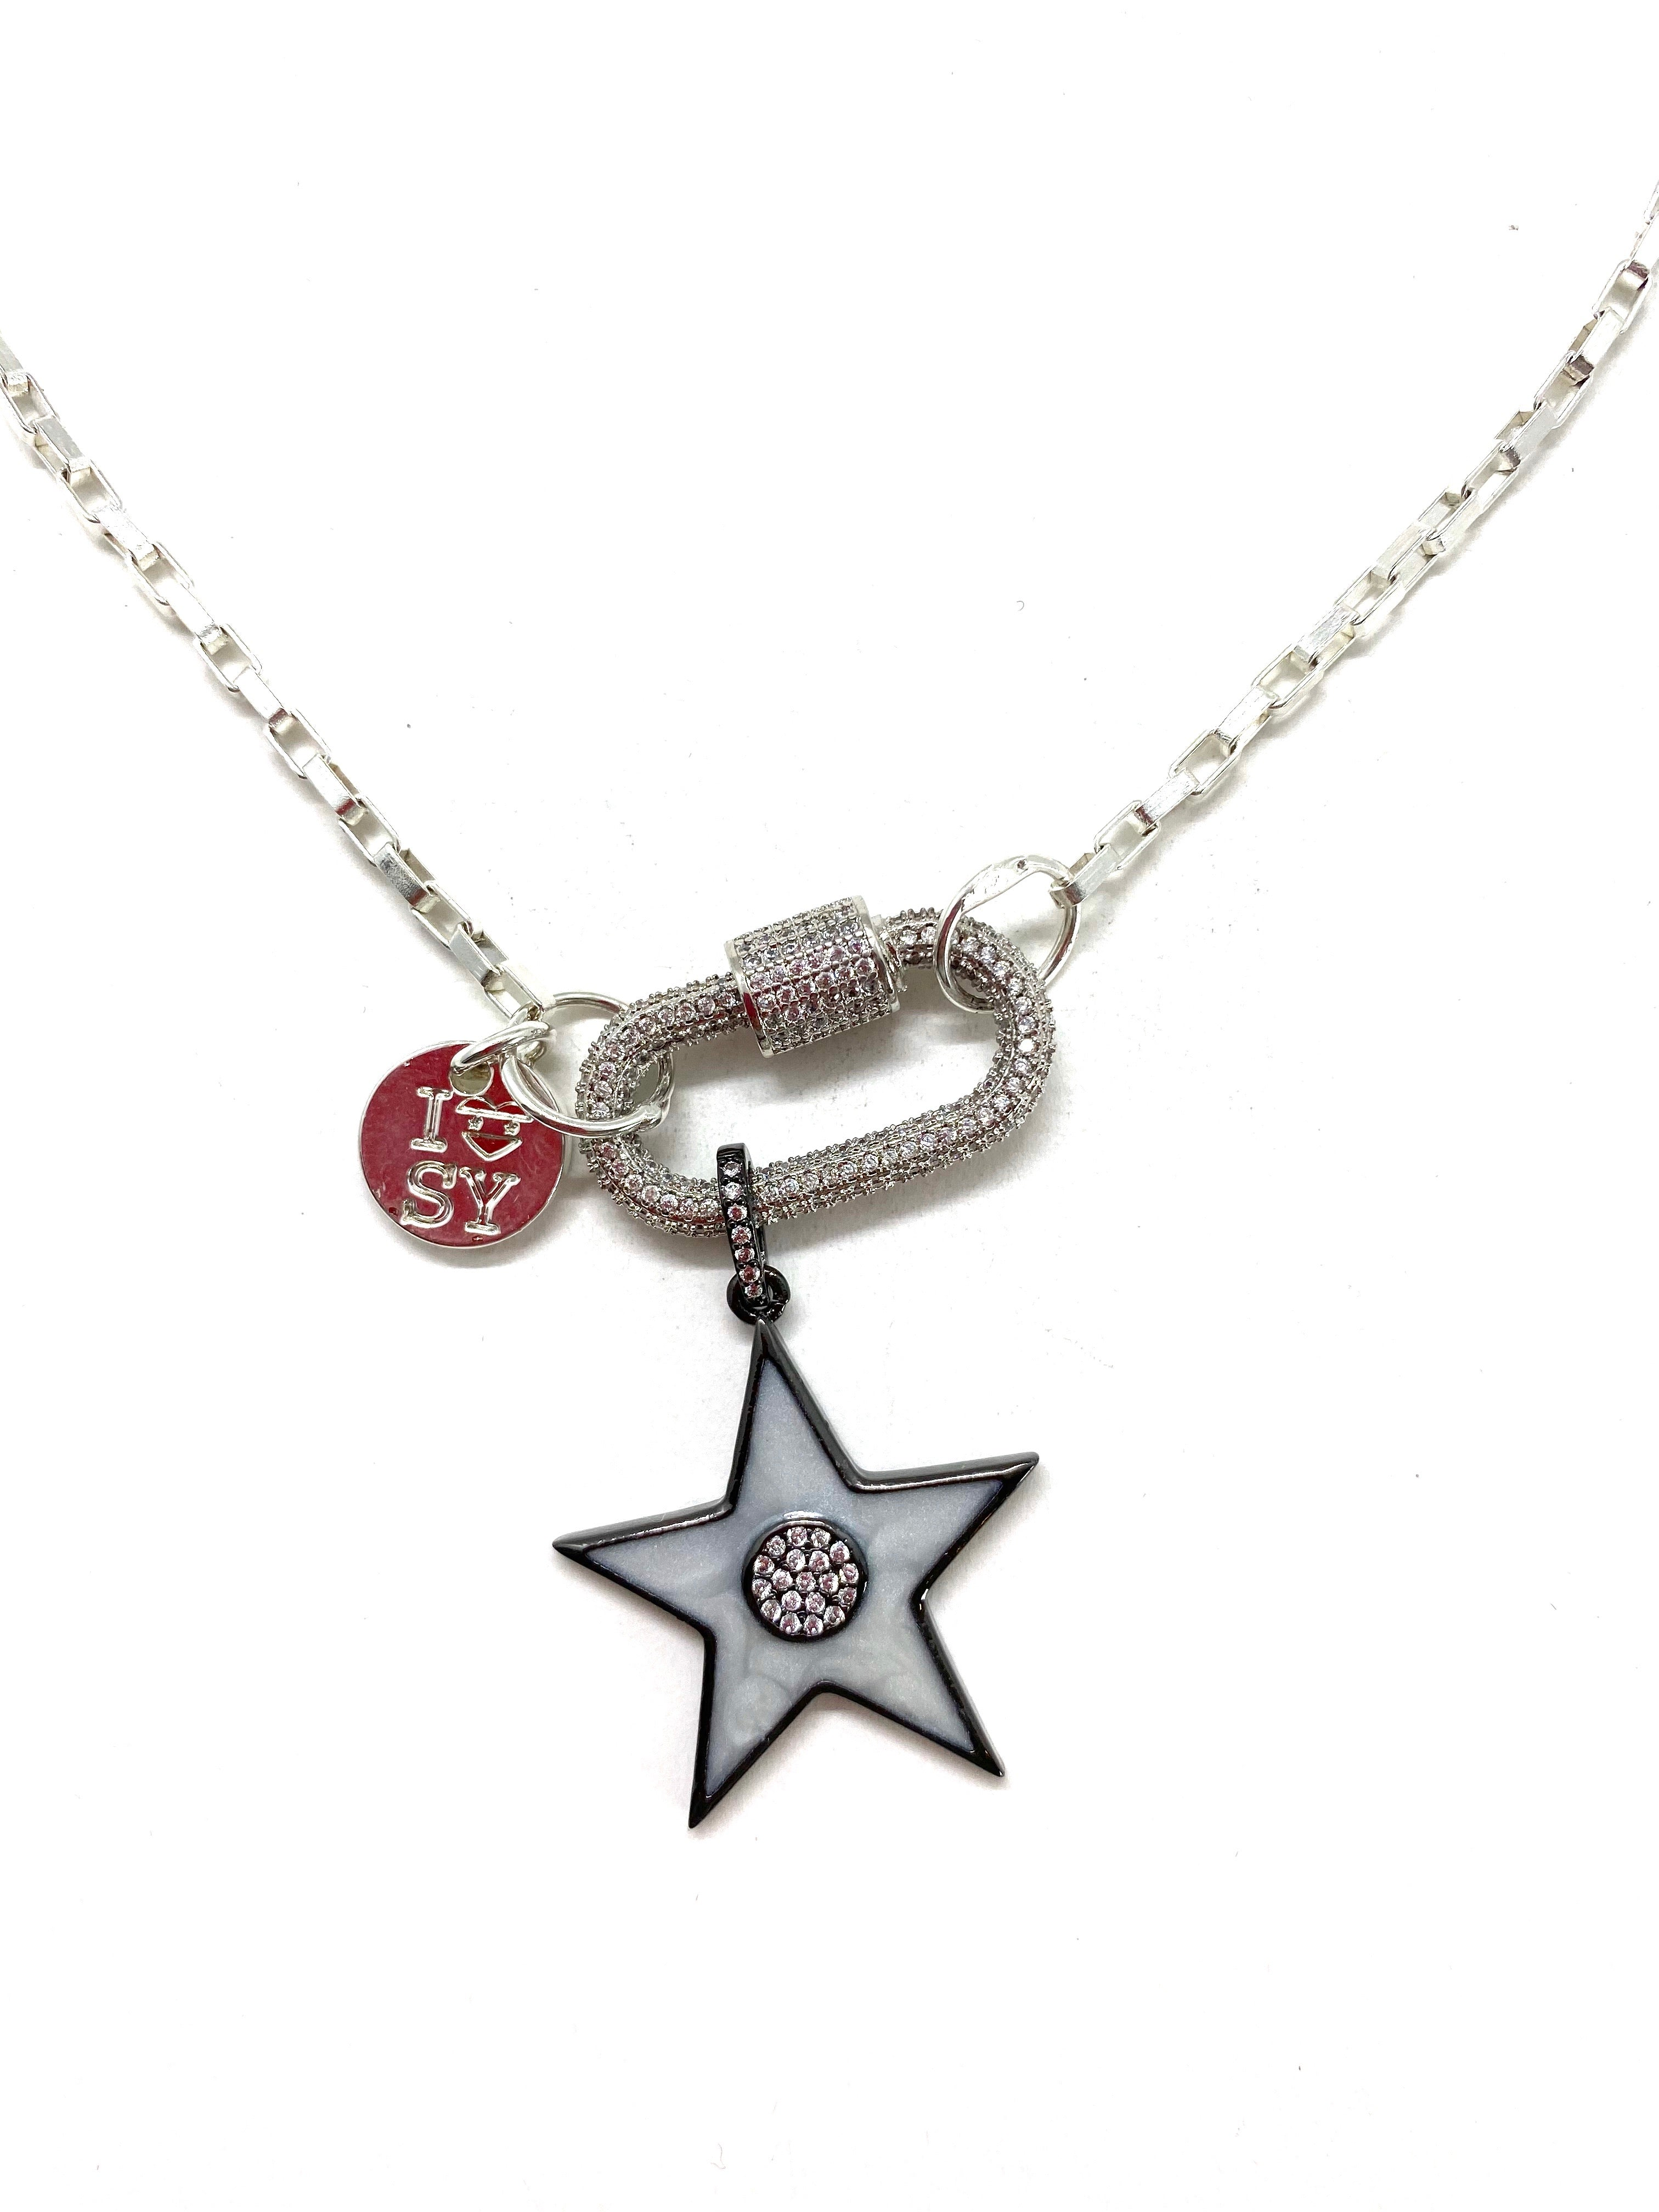 Clip to impact silver Hardware necklace, grey star.